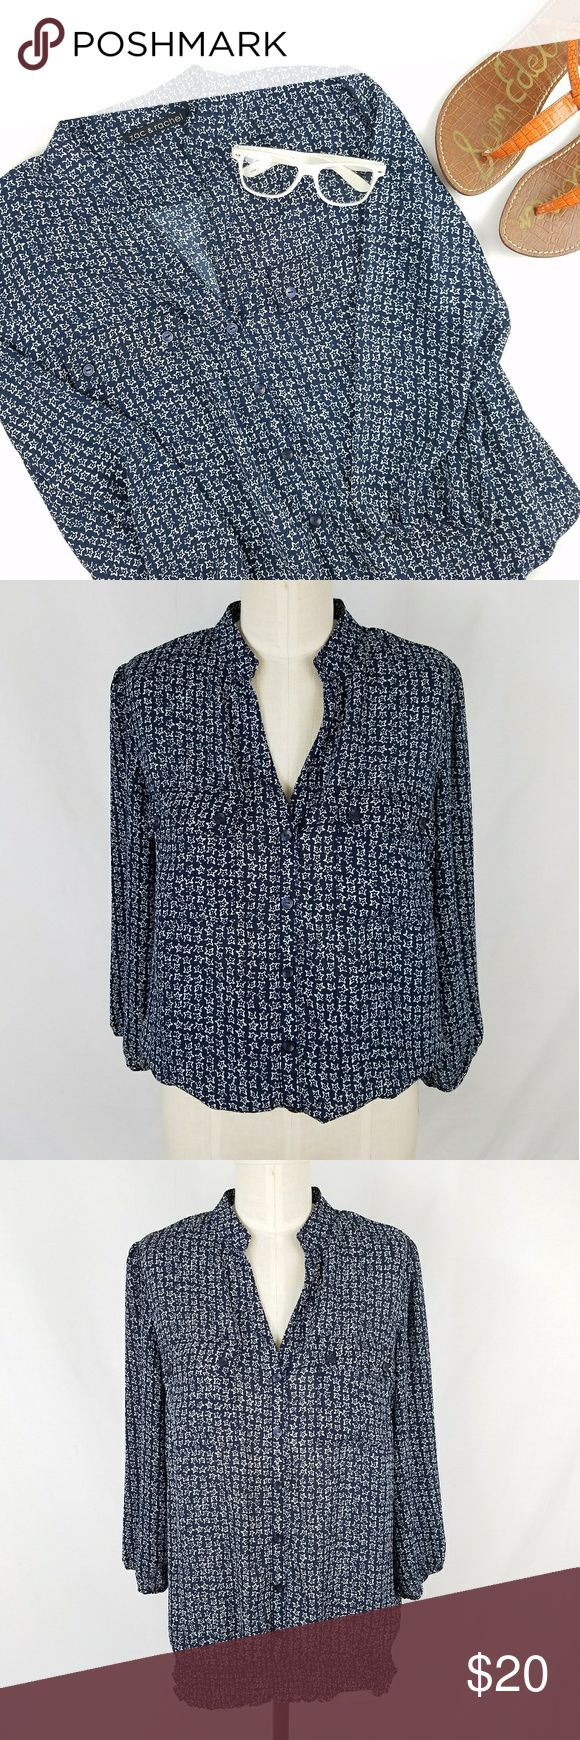 Zac & Rachel Star Print Blouse Top ✴20% OFF BUNDLES OF 3 OR MORE✴ 100% polyester  V-neck with faux button closure down front  2 functional chest pockets Smocked elastic waistband  Gathered cropped sleeves Excellent gently used condition!  PLEASE READ CLOSET INFO AND POLICIES POST Zac & Rachel Tops